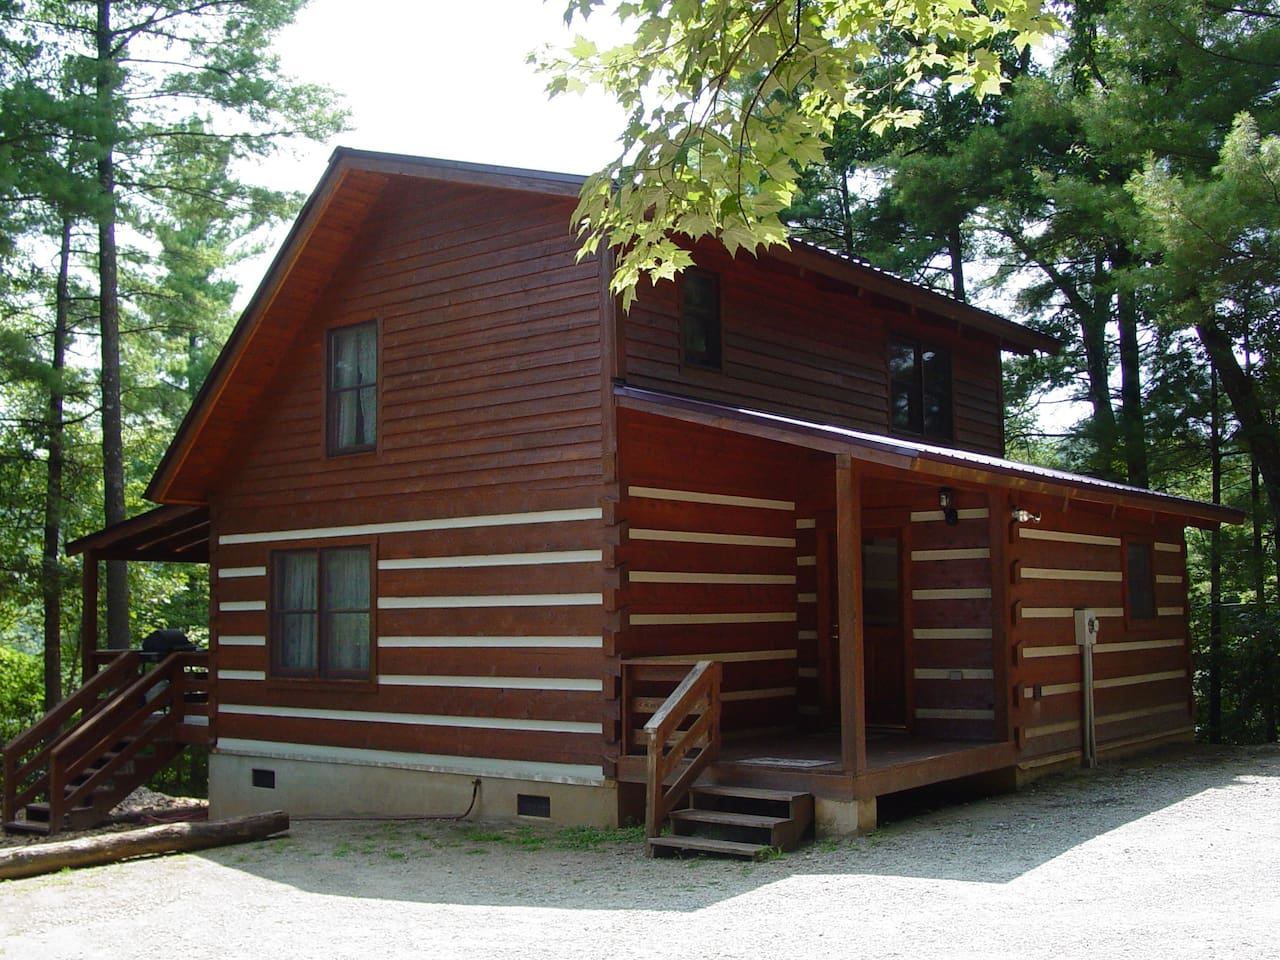 elegant nice creative your rentals cabins boone ideas own with mountain near remodel home nc in fancy design furniture cabin about